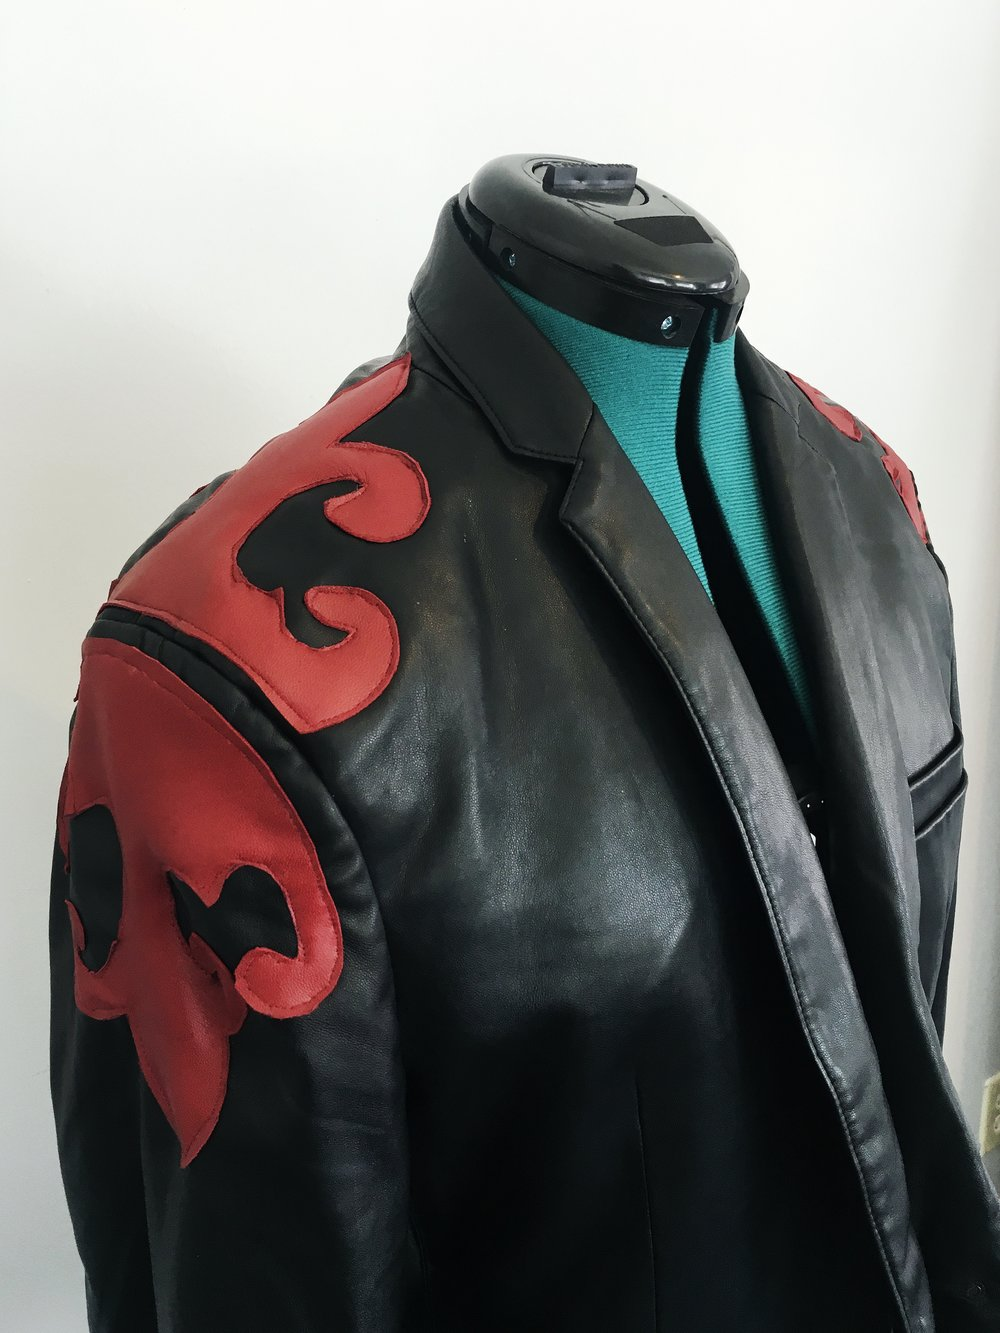 zara red leather jacket.JPG